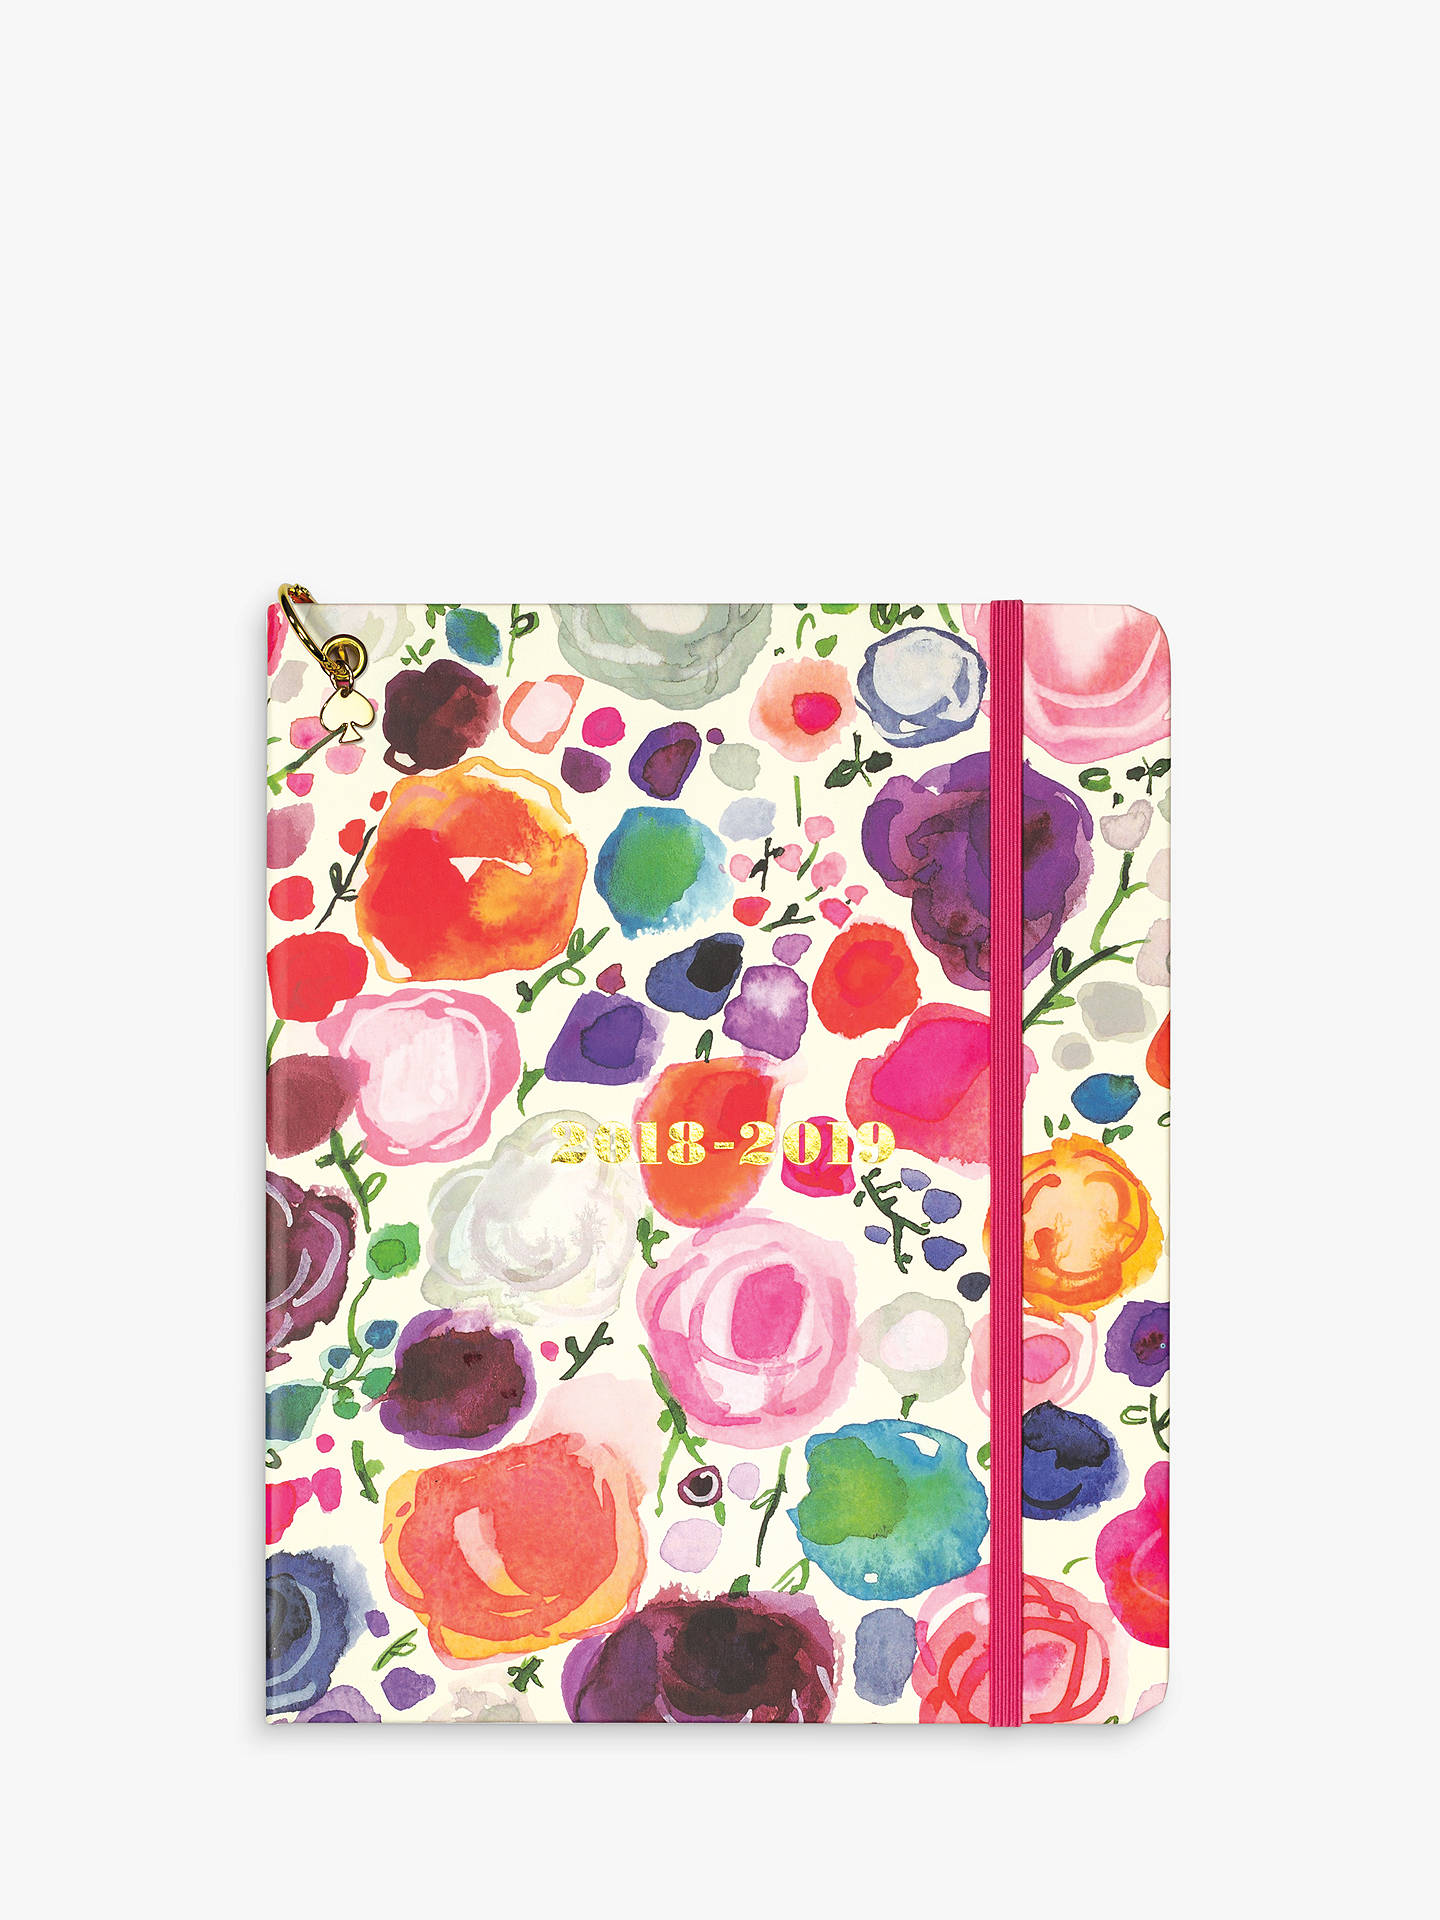 cdfe36c013a2b kate spade new york Large Floral Diary 2019 at John Lewis   Partners